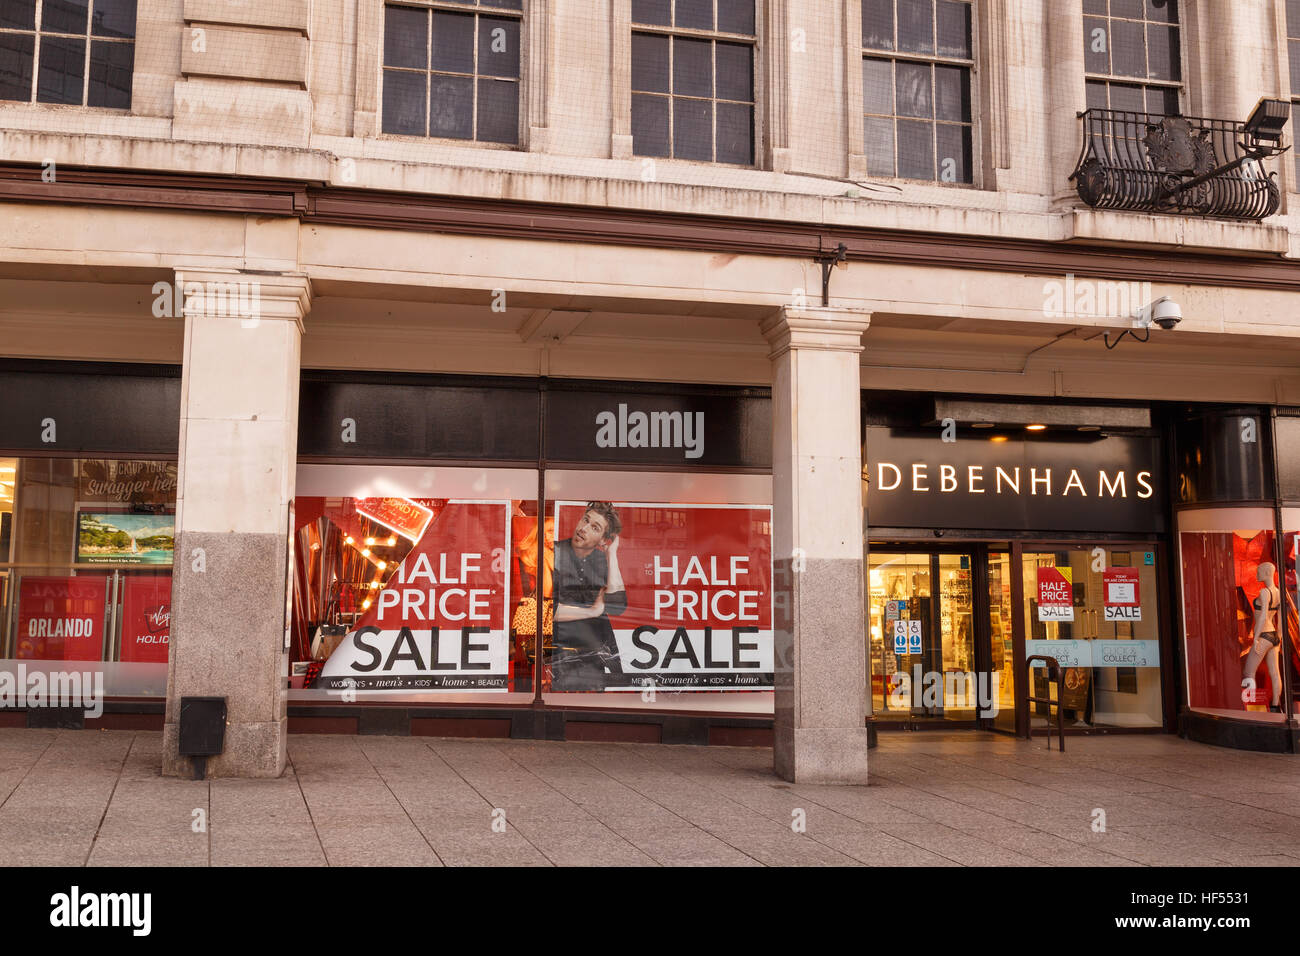 Half price sale posters in Debenhams window on Boxing Day in Nottingham. In Nottingham, England. On 26th December - Stock Image